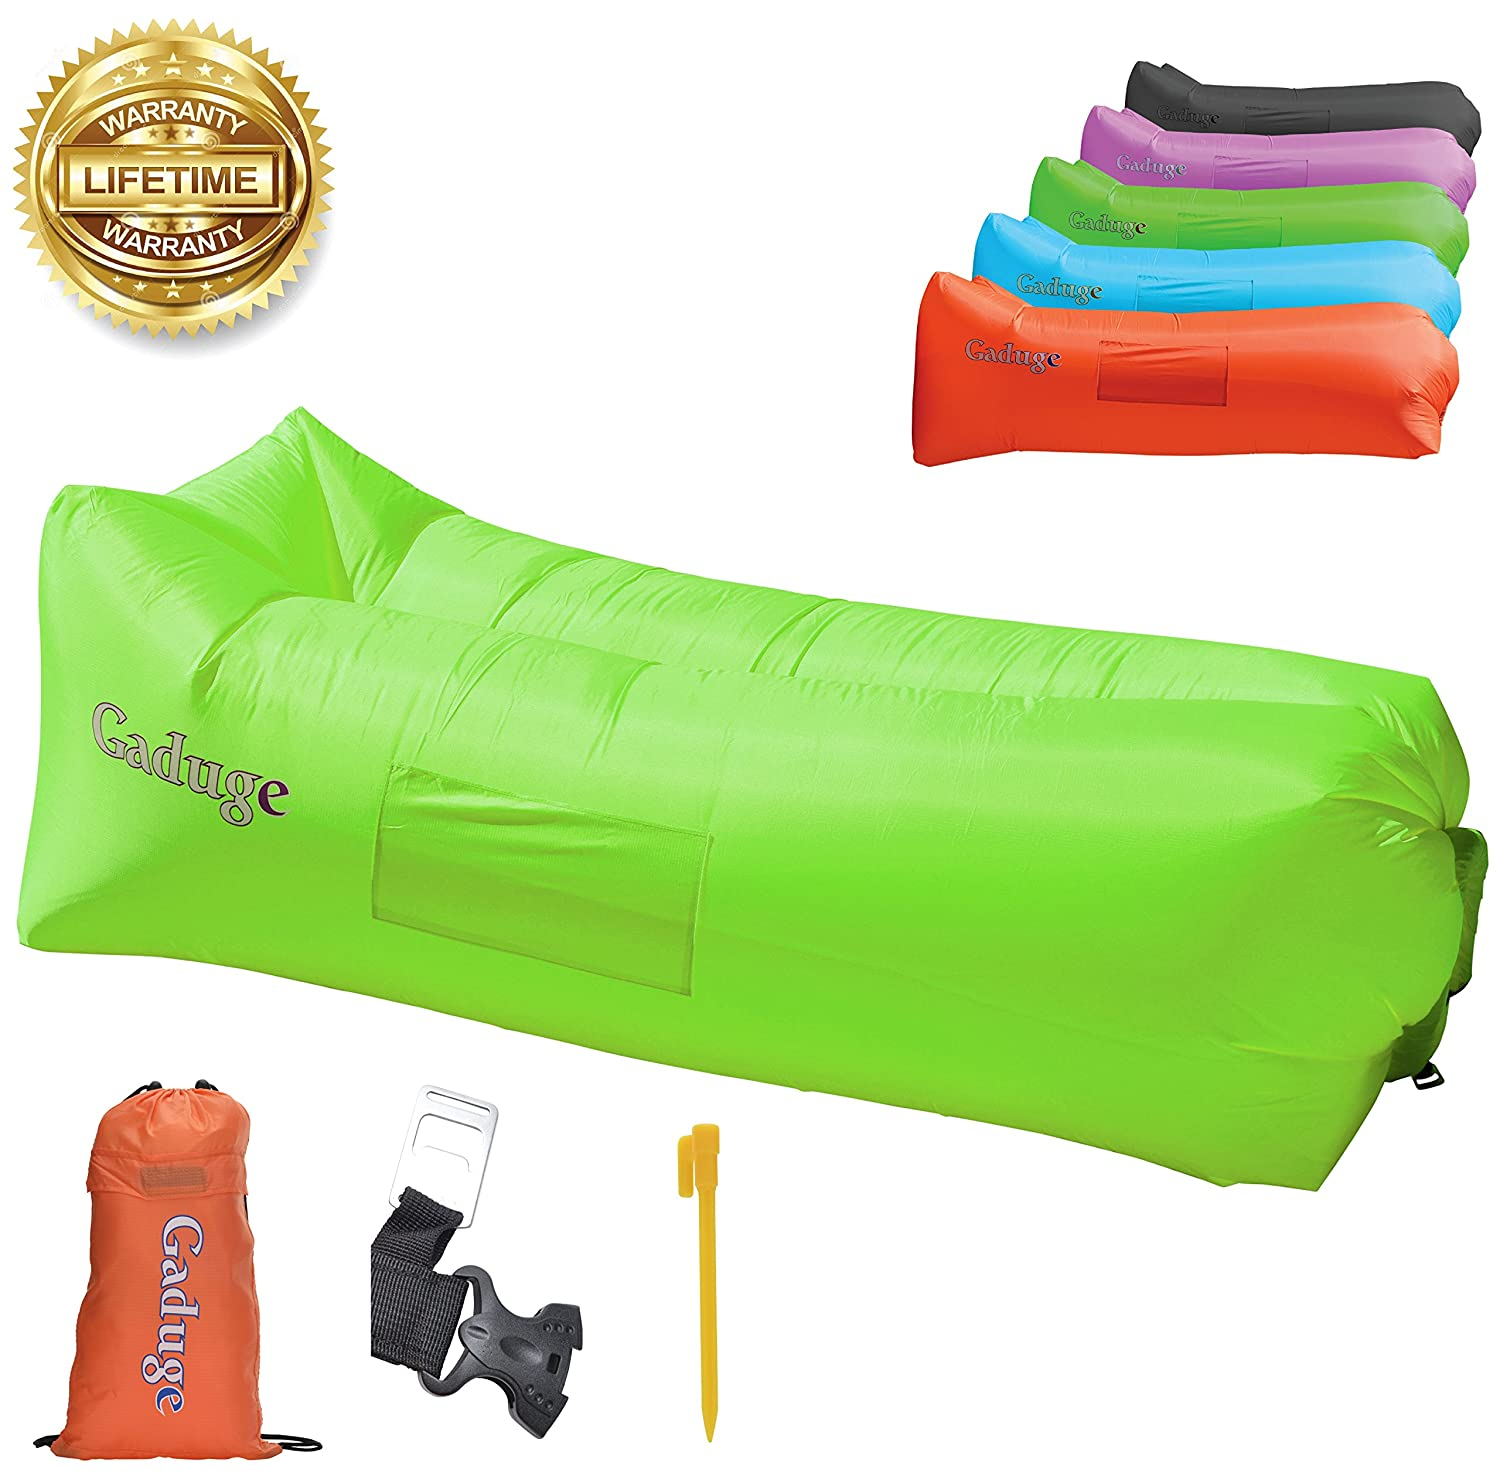 Upgraded 2019 Giant Inflatable Lounger Chair Hangout Sofa with 10 Useful Accessories in 8 Fun Colors! Waterproof Inflatable Couch Bed for Indoor, Outdoor, Pool, Beach, Camping and More! (Green) 141[並行輸入]   B075SYGD9G